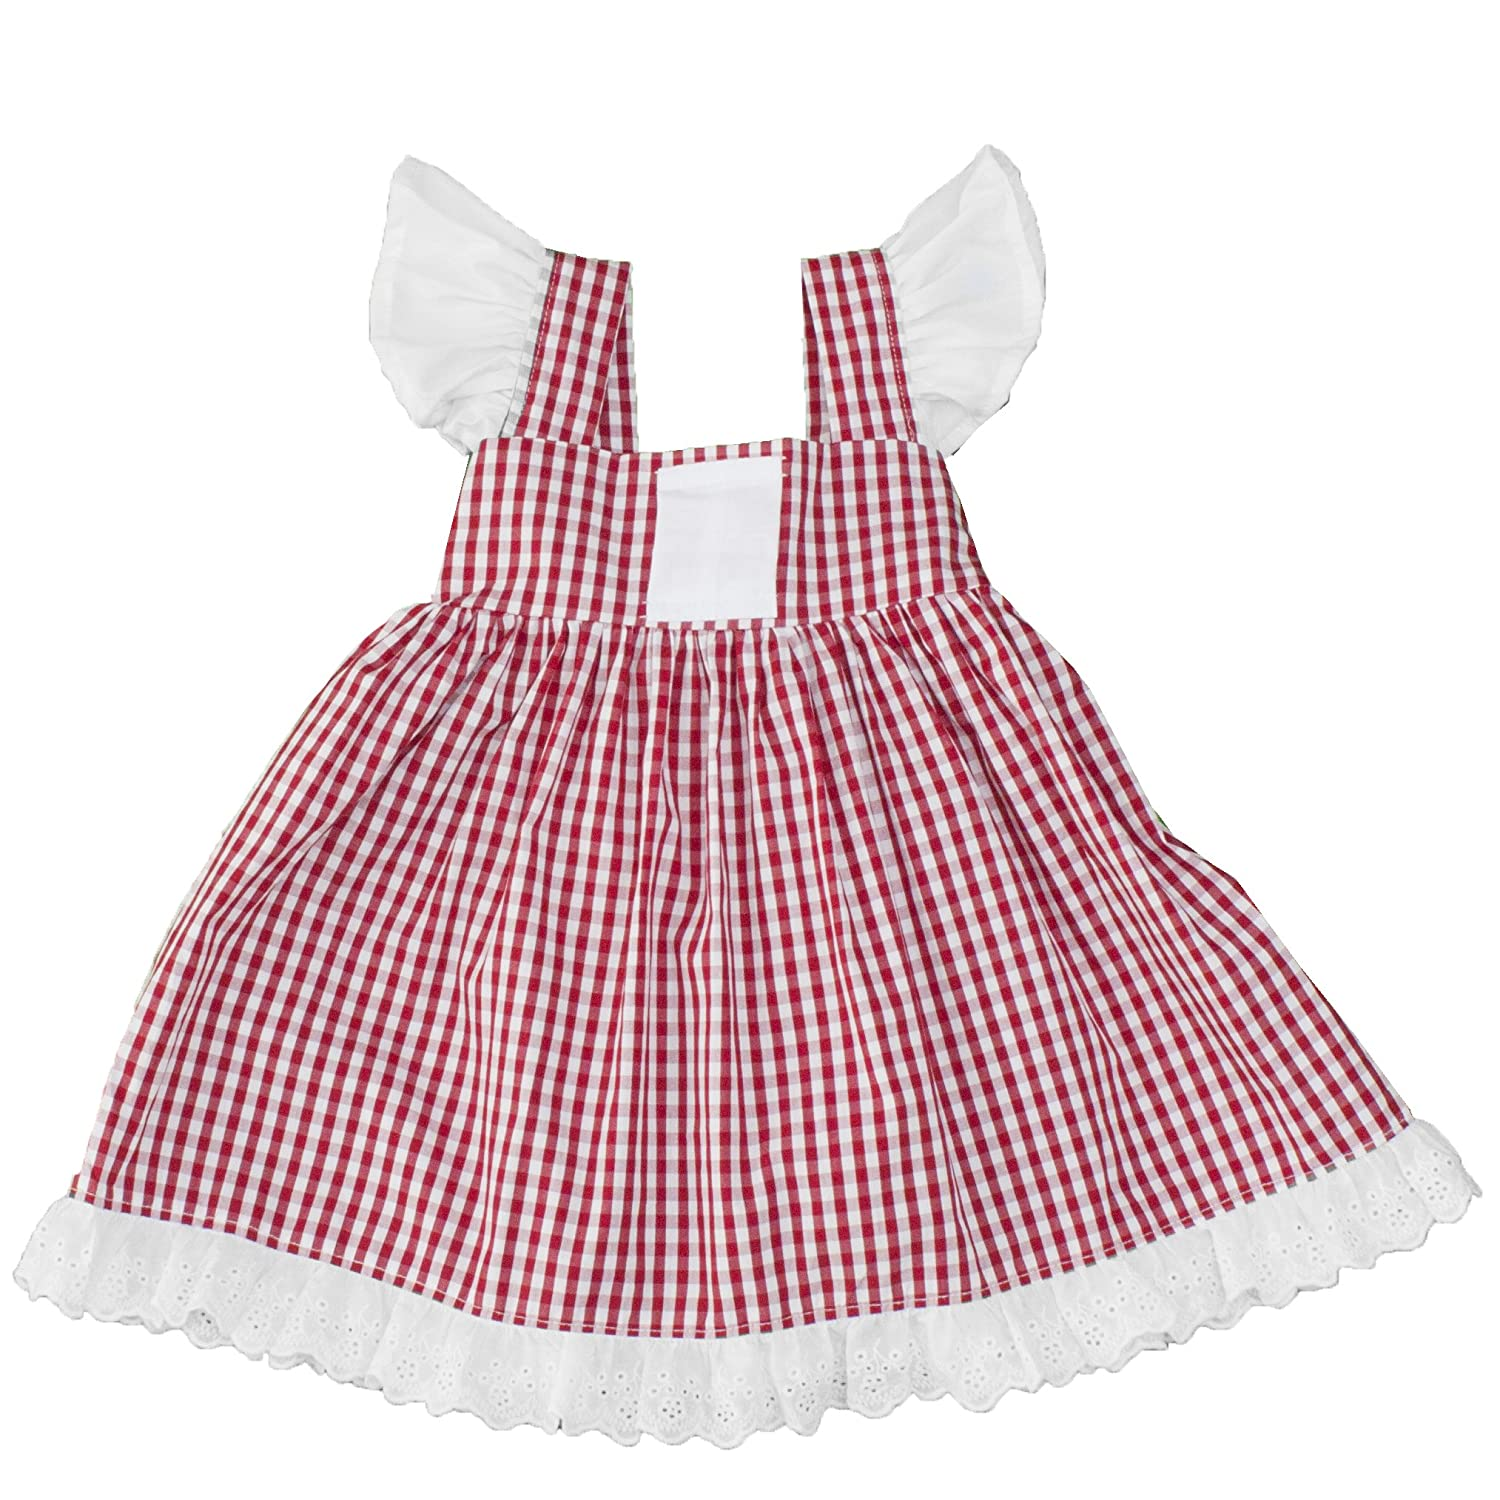 Girls Gingham A Line Dress with Eyelet Lace Trim & Angel Sleeves 15298-Parent